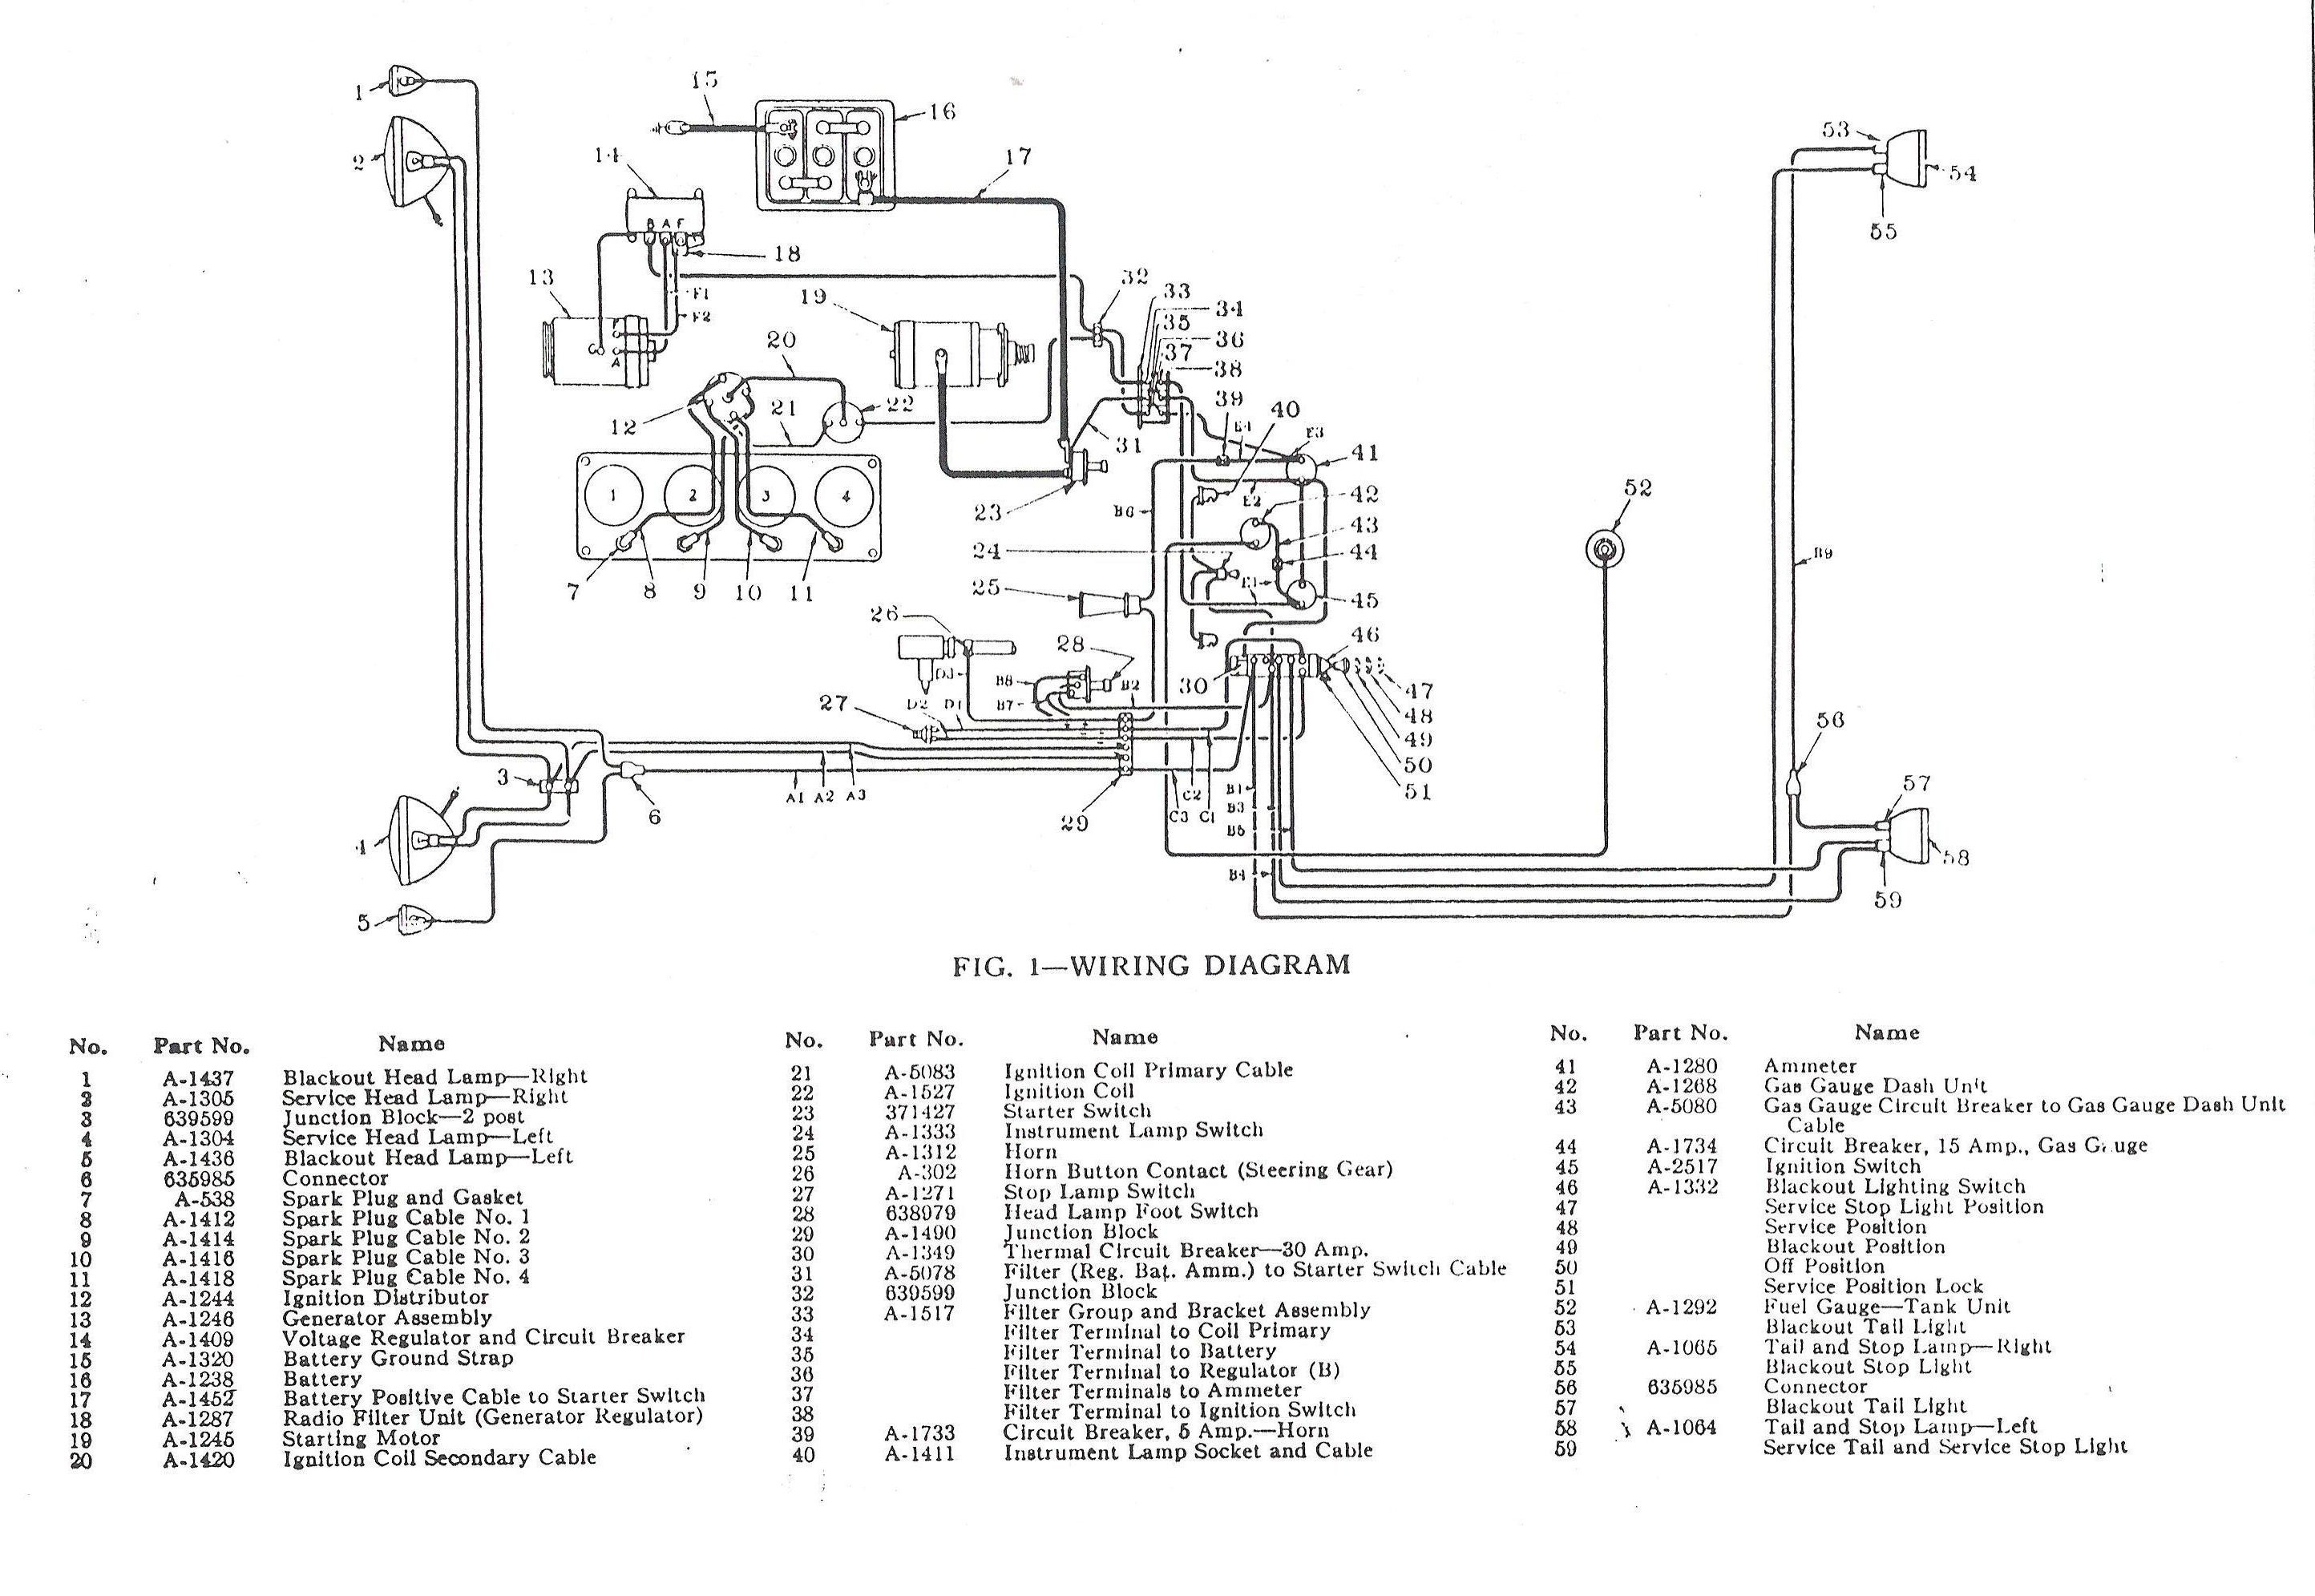 1980 Jeep Cj7 Wiring Diagram from static-cdn.imageservice.cloud